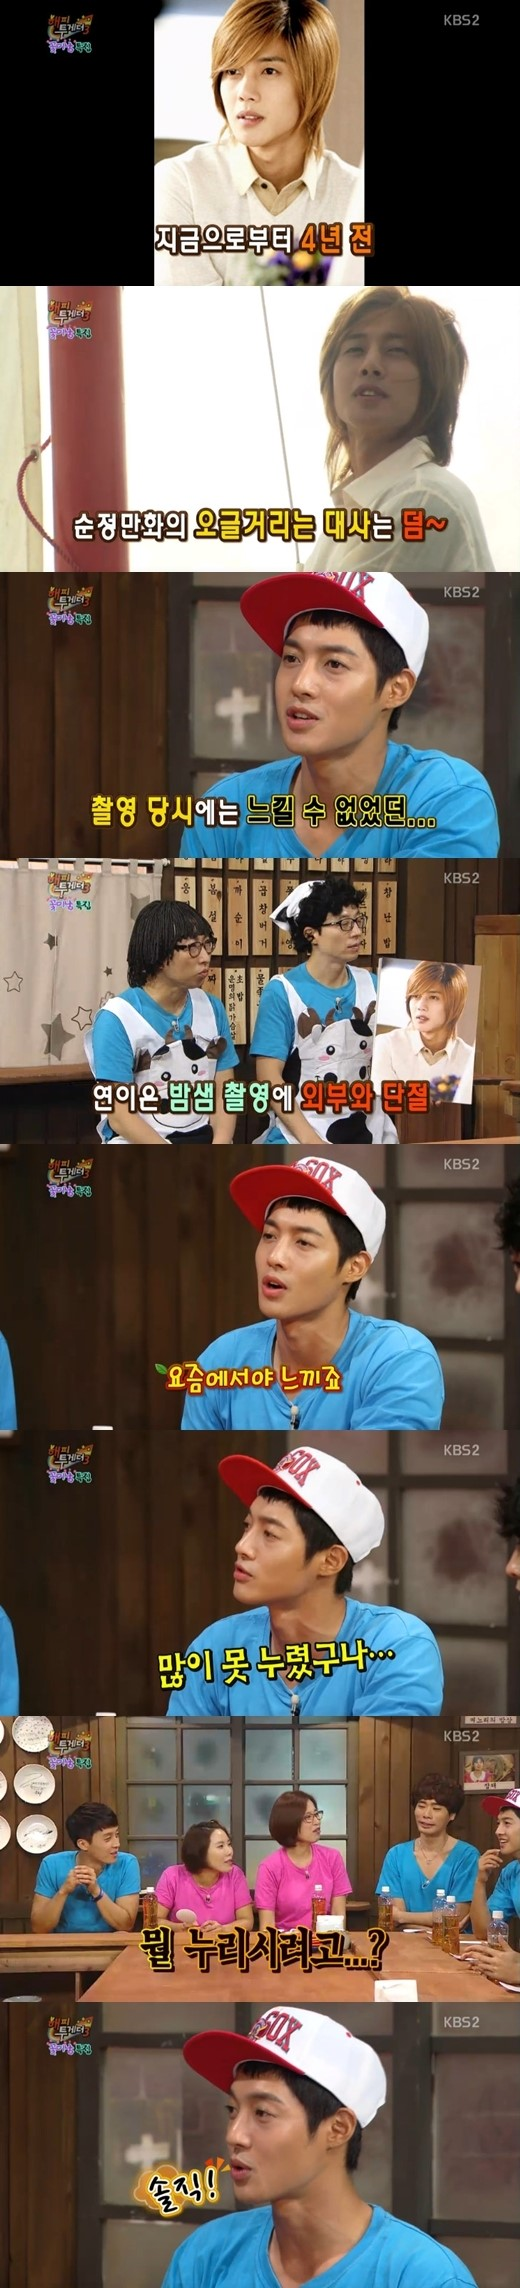 kim hyun joong happy together